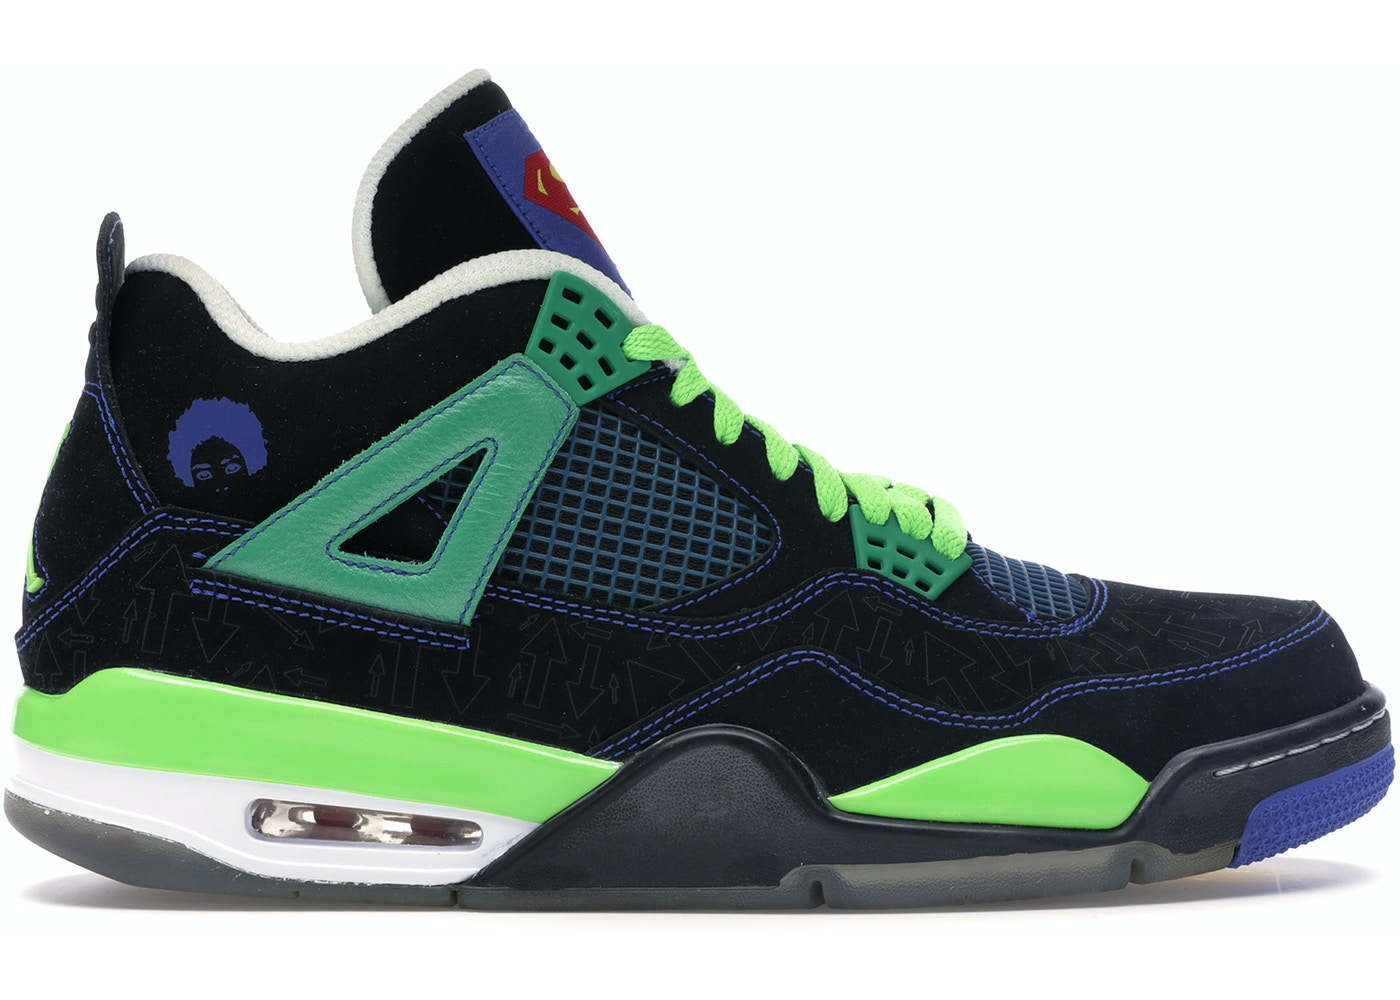 online store 2ed75 4e9f3 Buy Air Jordan 4 Shoes   Deadstock Sneakers